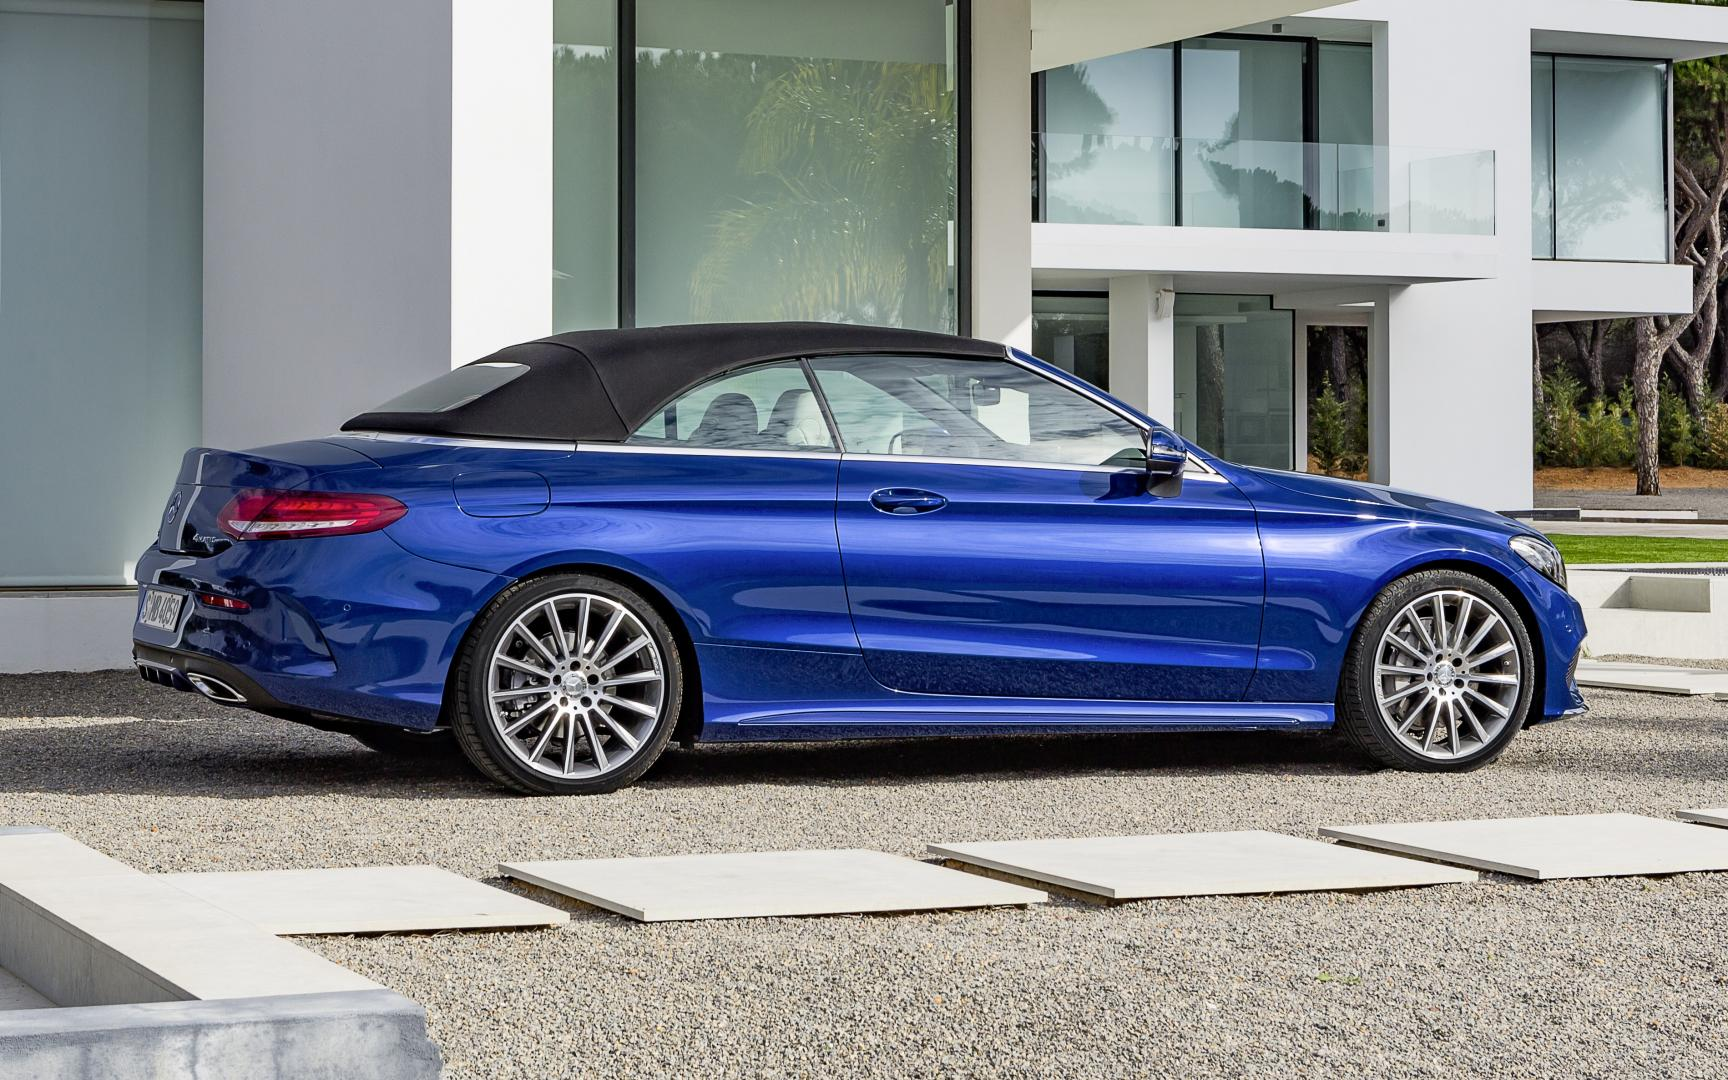 mercedes benz amg 63 with Mercedes C Klasse Cabrio Zomertijd on Das C Klasse Cabrio In Der Ocean Blue Edition in addition Autotest Mercedes Benz S 63 Amg Coupe also 2018 Mercedes Amg A 45 New Sporty A Class With 400 Hp furthermore 04 in addition 2018 Mercedes Benz E Class Coupe Official 36417.